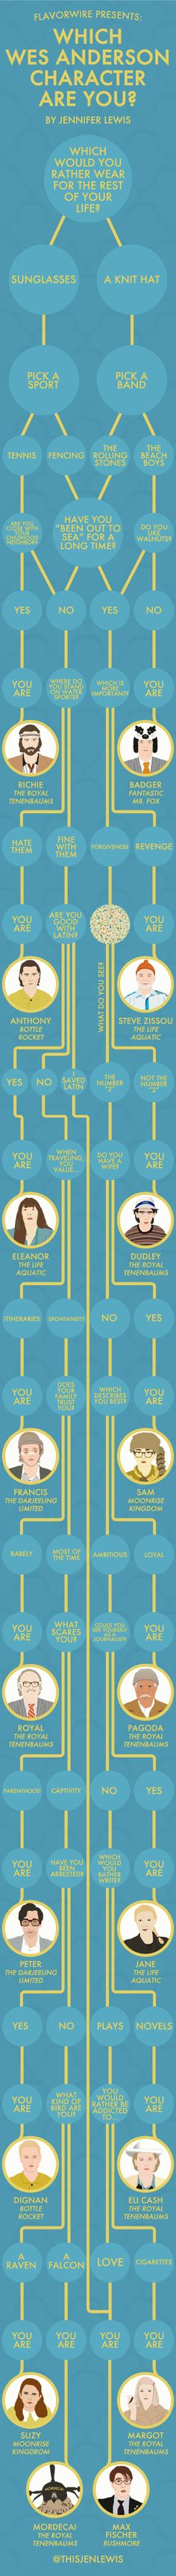 Qué personaje de Wes Anderson eres? (Which Wes Anderson character are you...I guess )